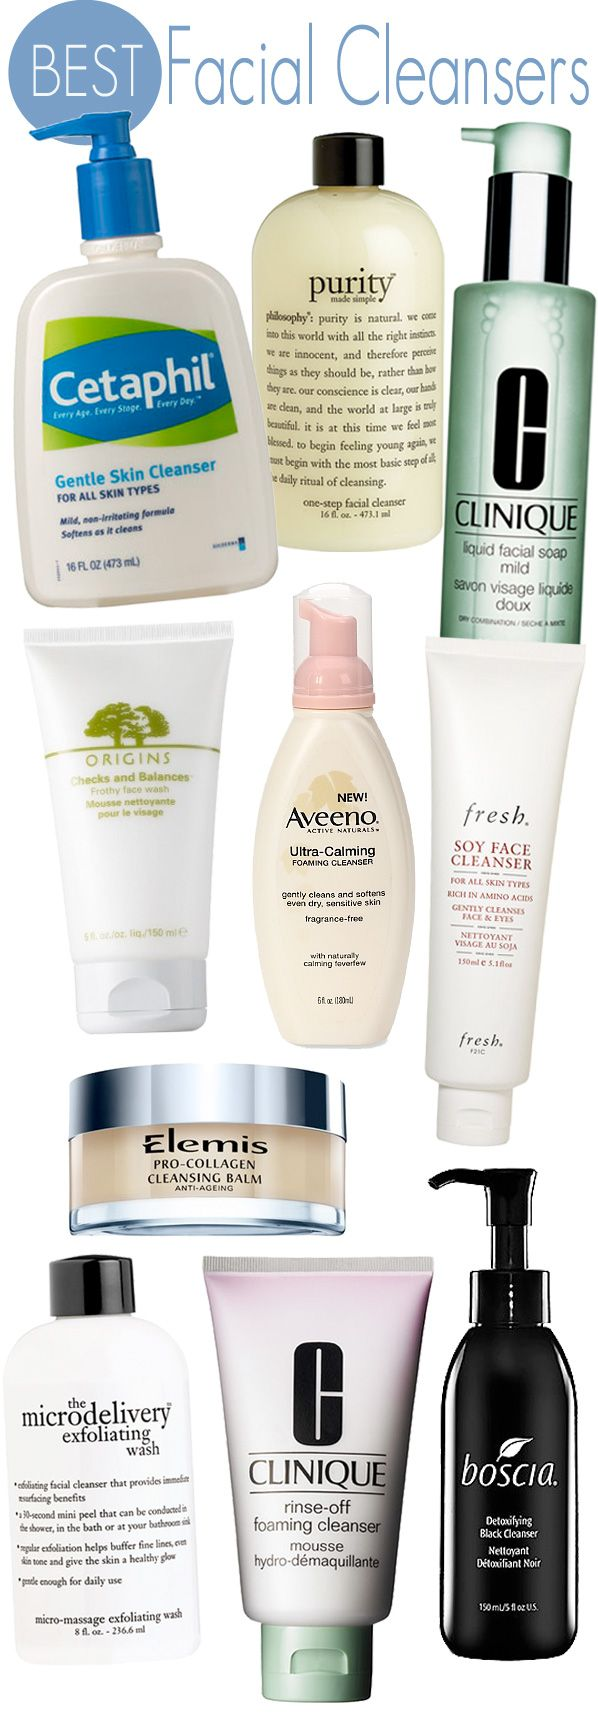 Best rated facial products for